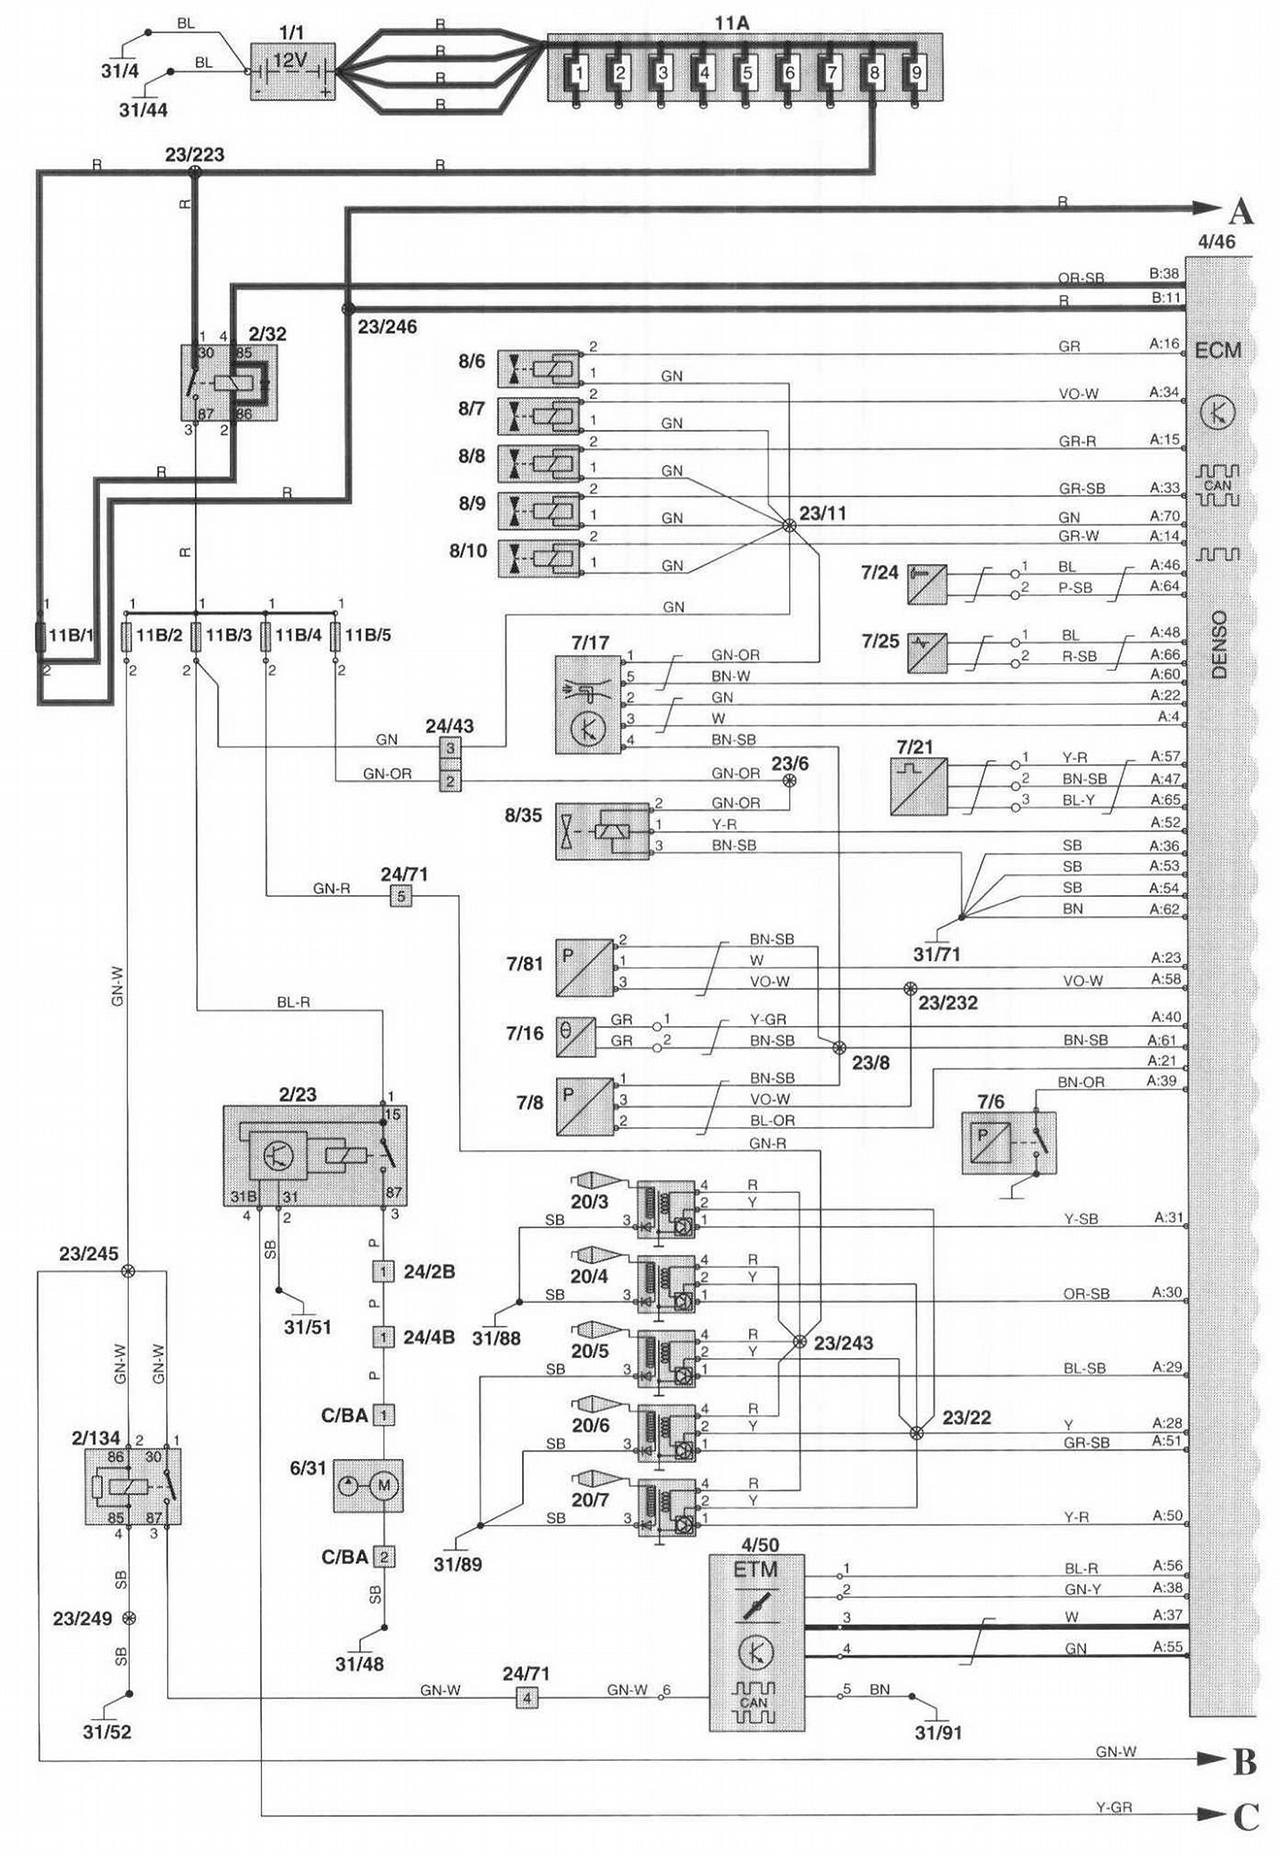 2012 Volvo S80 Wiring Diagram Modern Design Of Semi Truck Diagrams 99 Data Schema Rh 26 Danielmeidl De S40 Engine